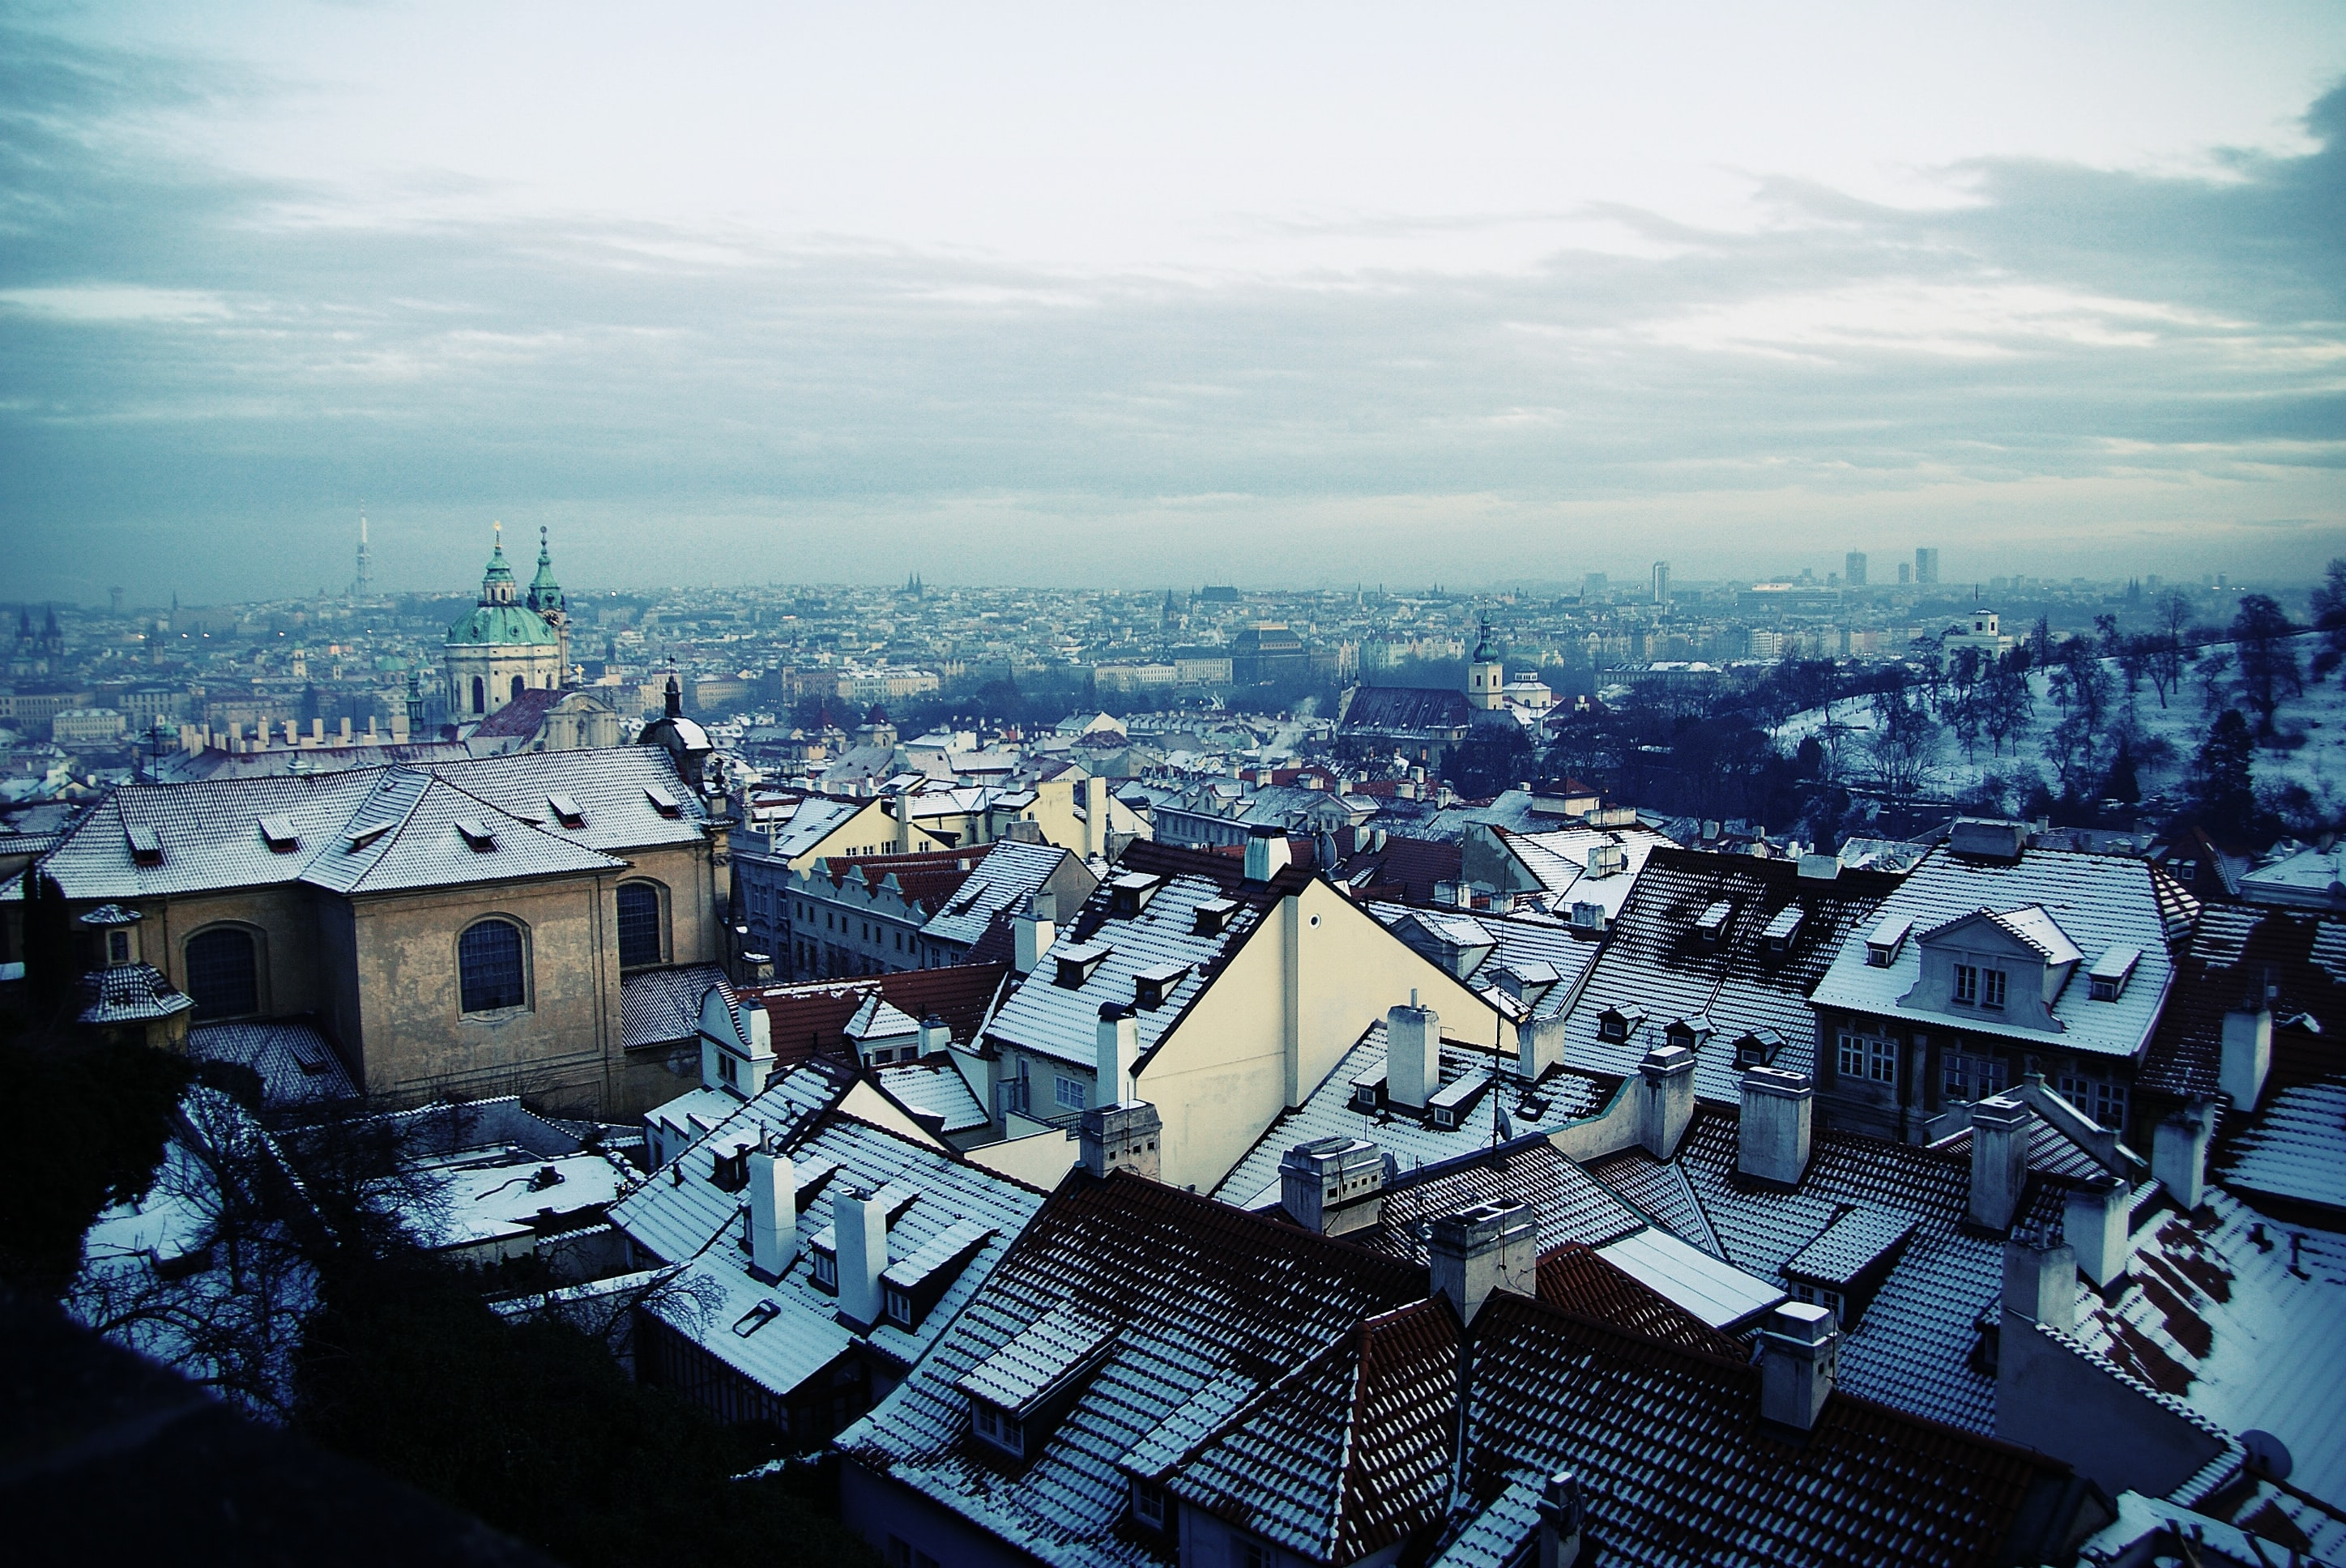 Rooftops of different buildings and architecture in the city